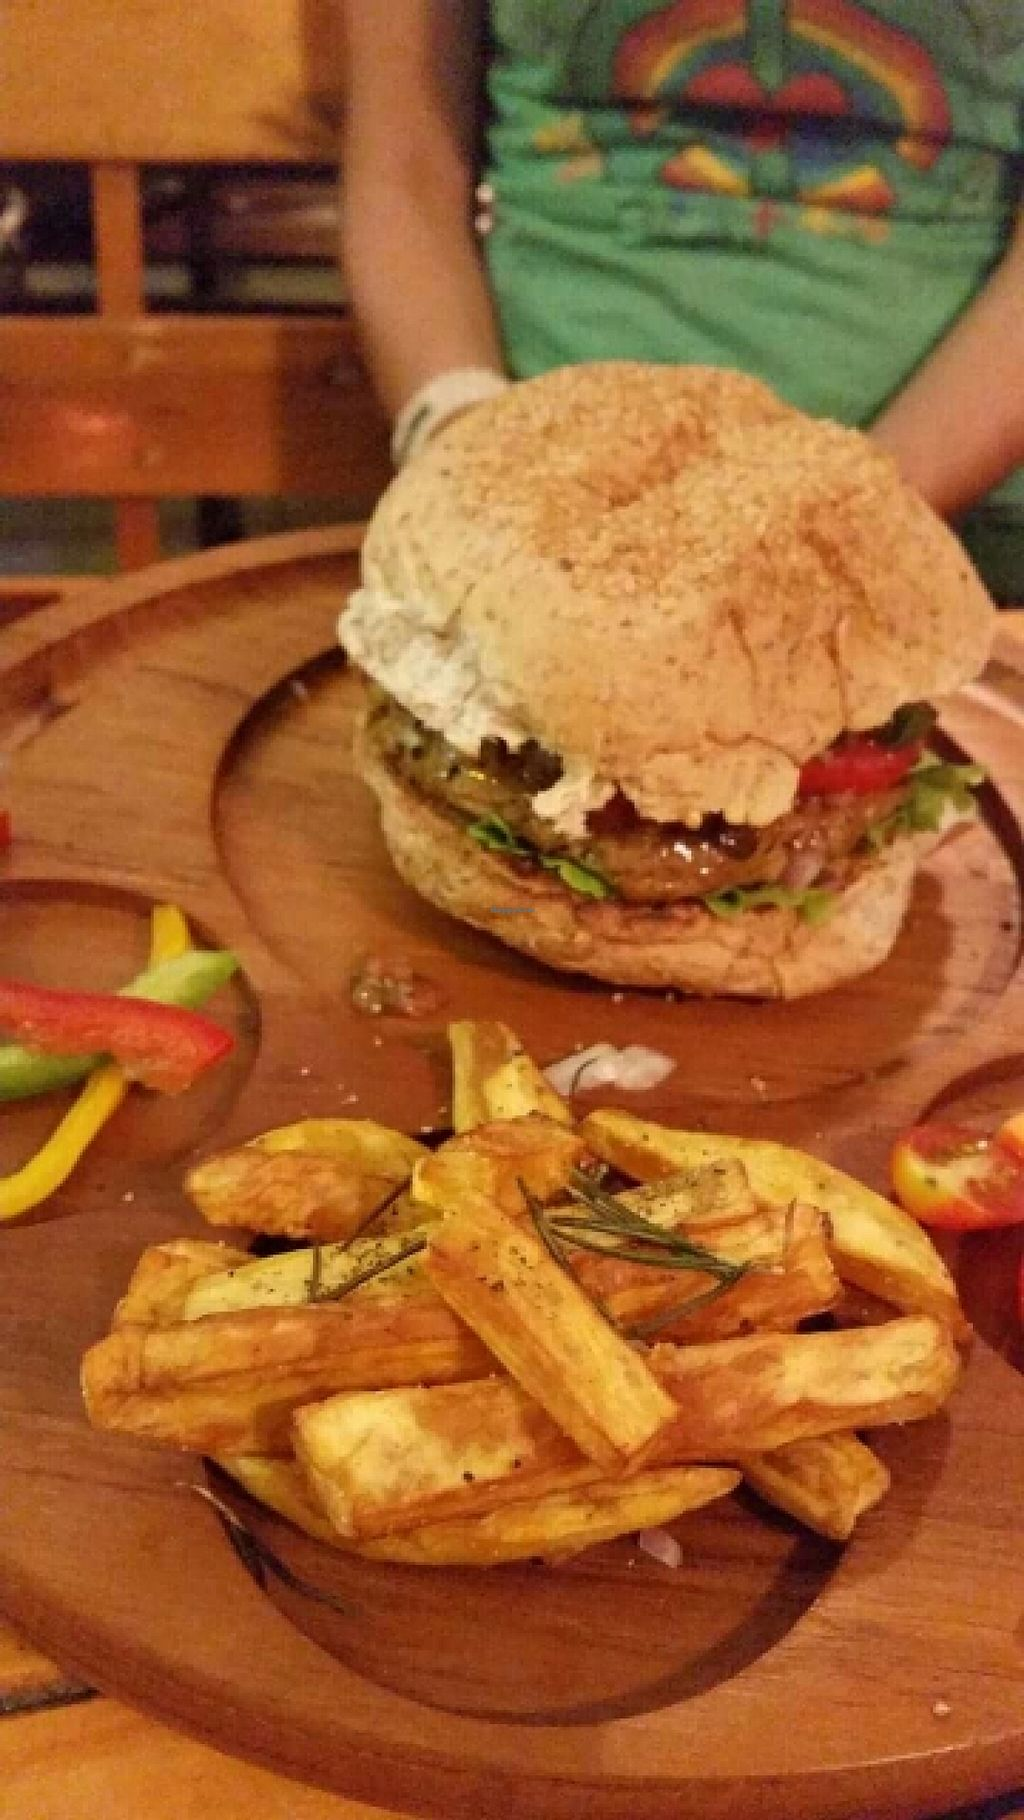 "Photo of CLOSED: Karma Kitchen  by <a href=""/members/profile/LilacHippy"">LilacHippy</a> <br/>Mushroom burger <br/> April 18, 2016  - <a href='/contact/abuse/image/72555/145056'>Report</a>"